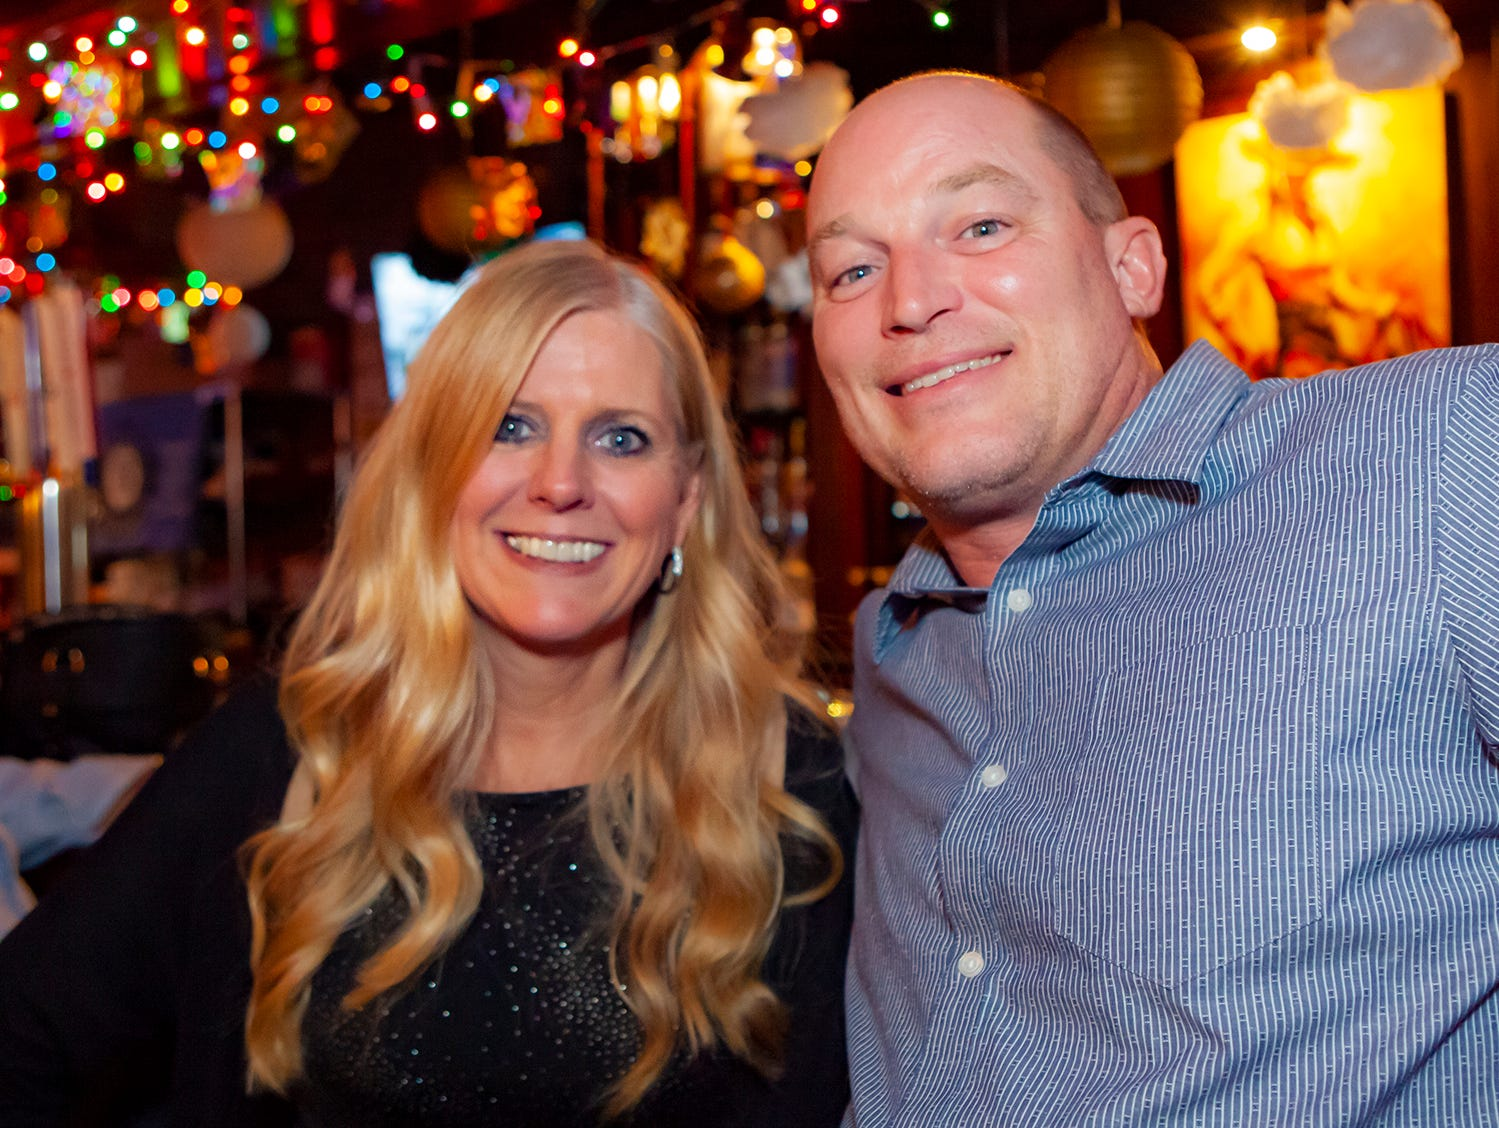 Anabel Hobbs and Mike Ensminger at the Hank's Honky Tonk New Year's Eve Party in Murfreesboro.